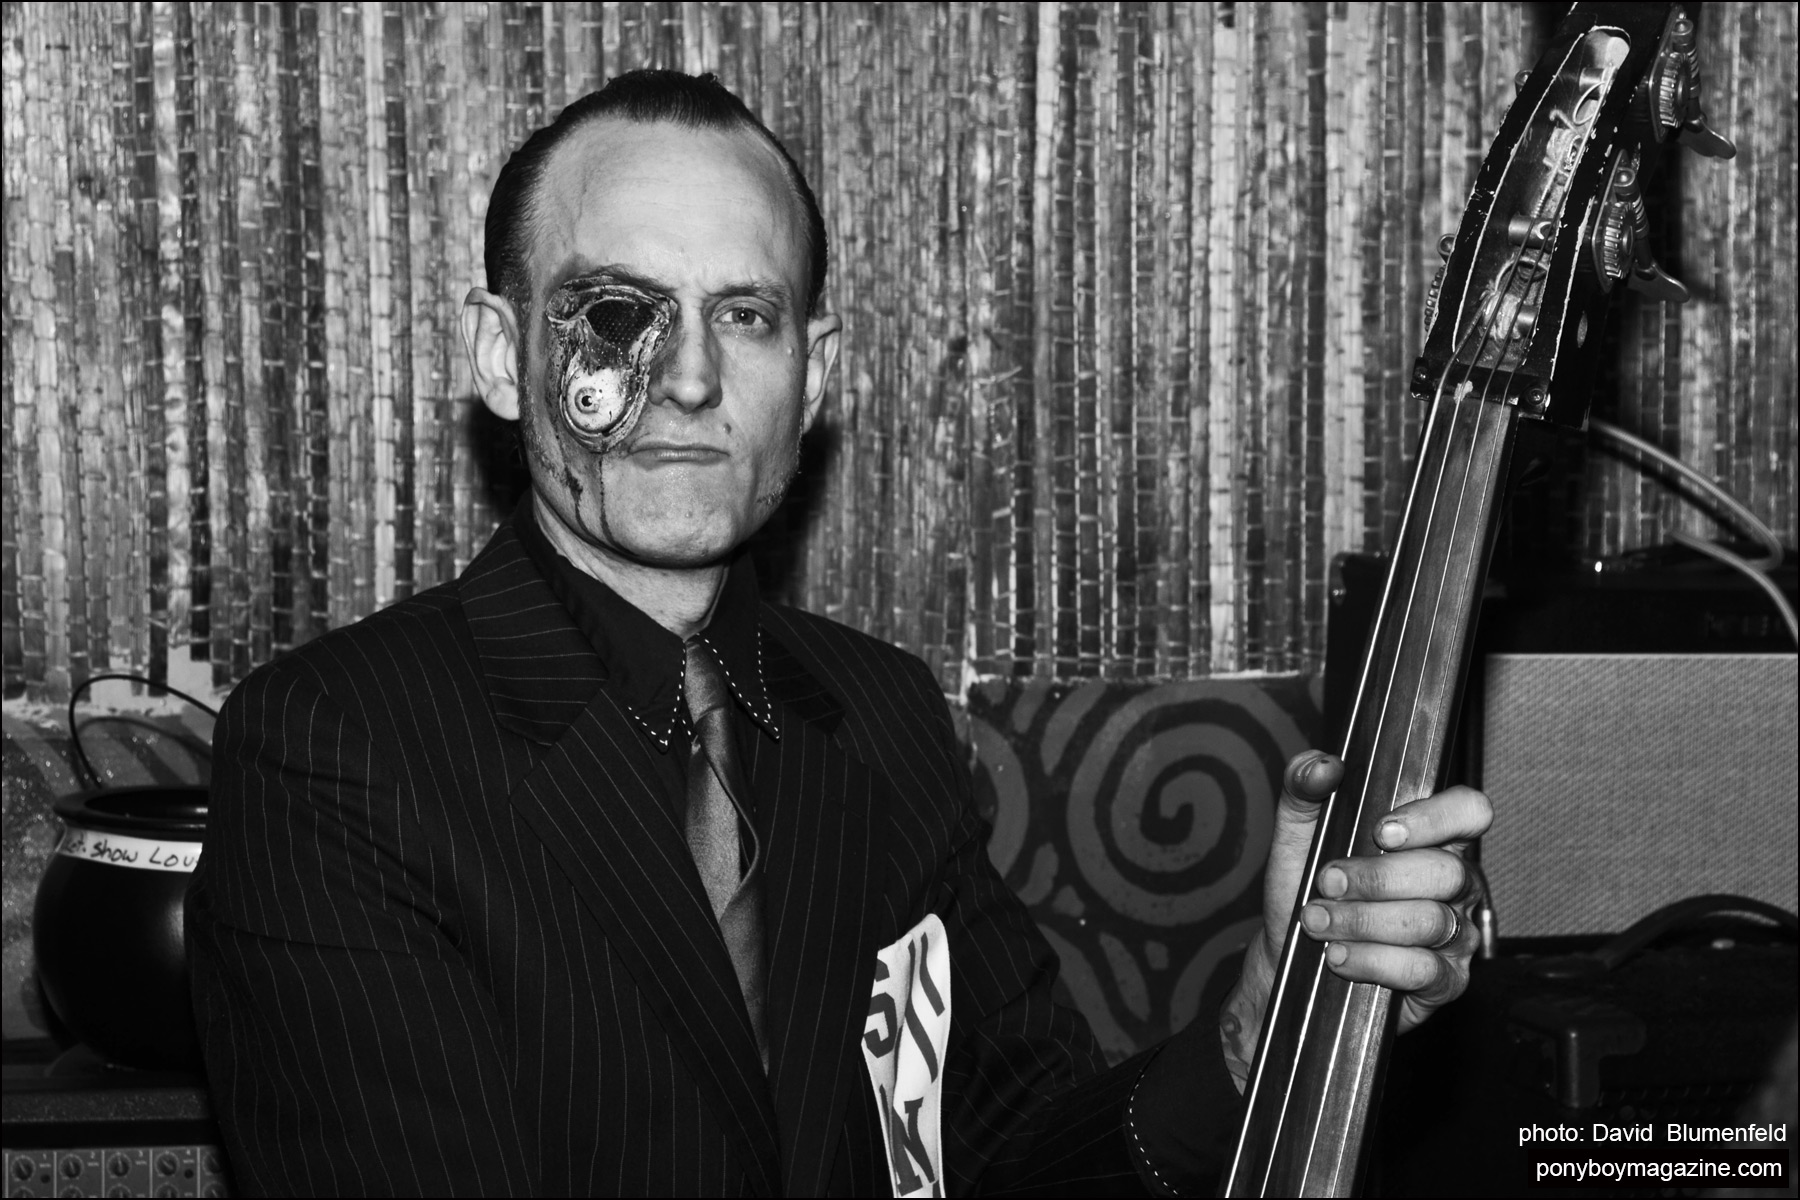 Upright bassist Peter Erickson, photographed at the Midnite Monster Hop party in New York City by David Blumenfeld. Pony boy magazine NY.